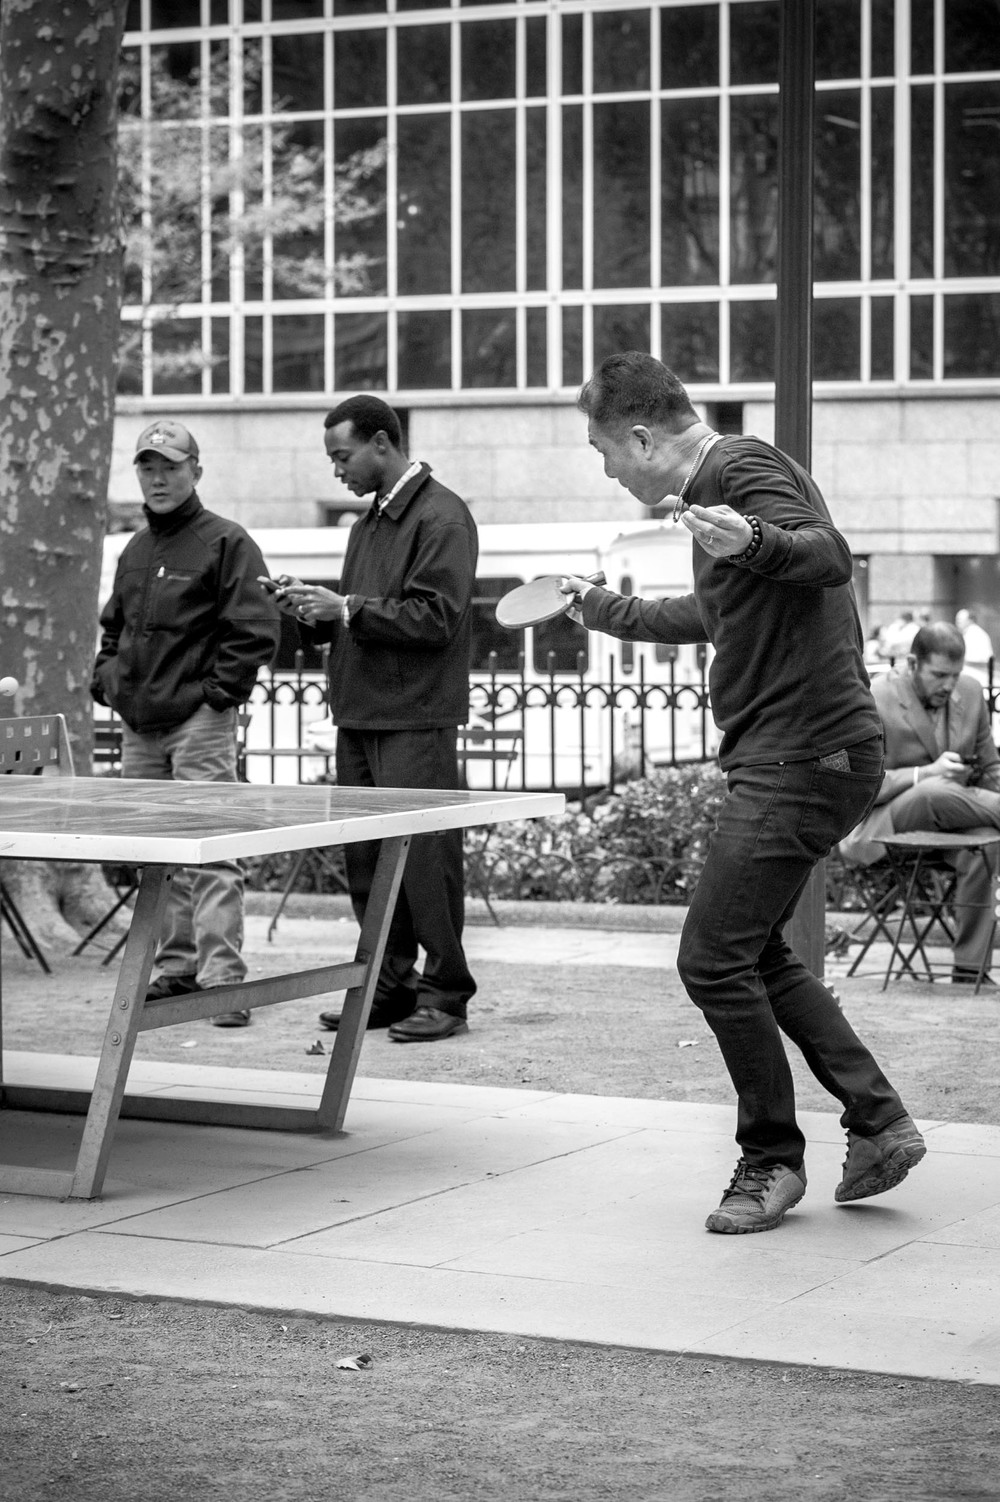 pam_korman_photography-ping-pong_diplomacy-bryant_park_new_york_city-13.jpg